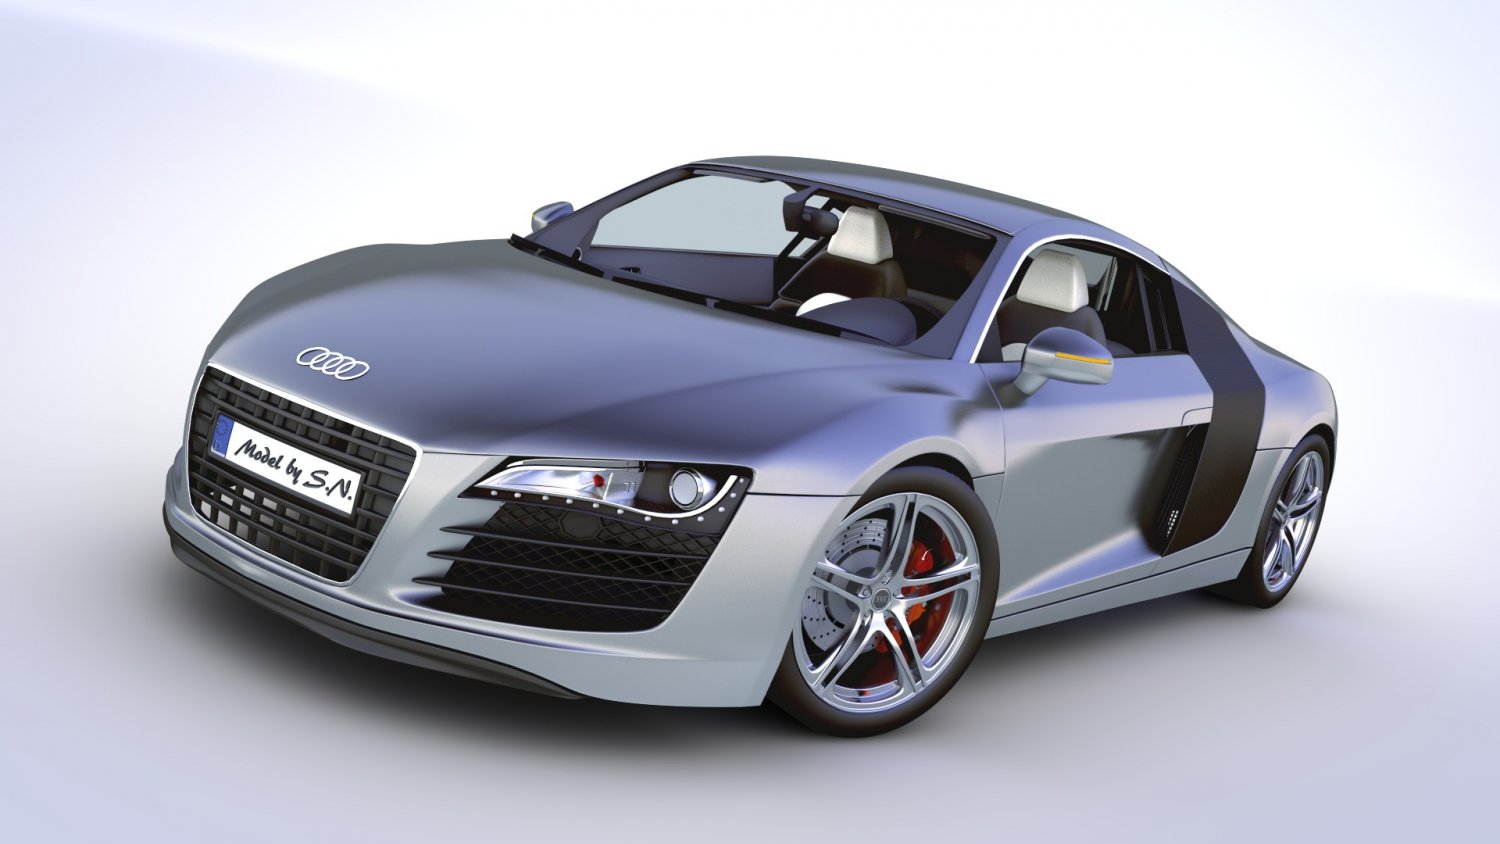 Audi R8 V8 High Quality Remove Bookmark This Item View Demo